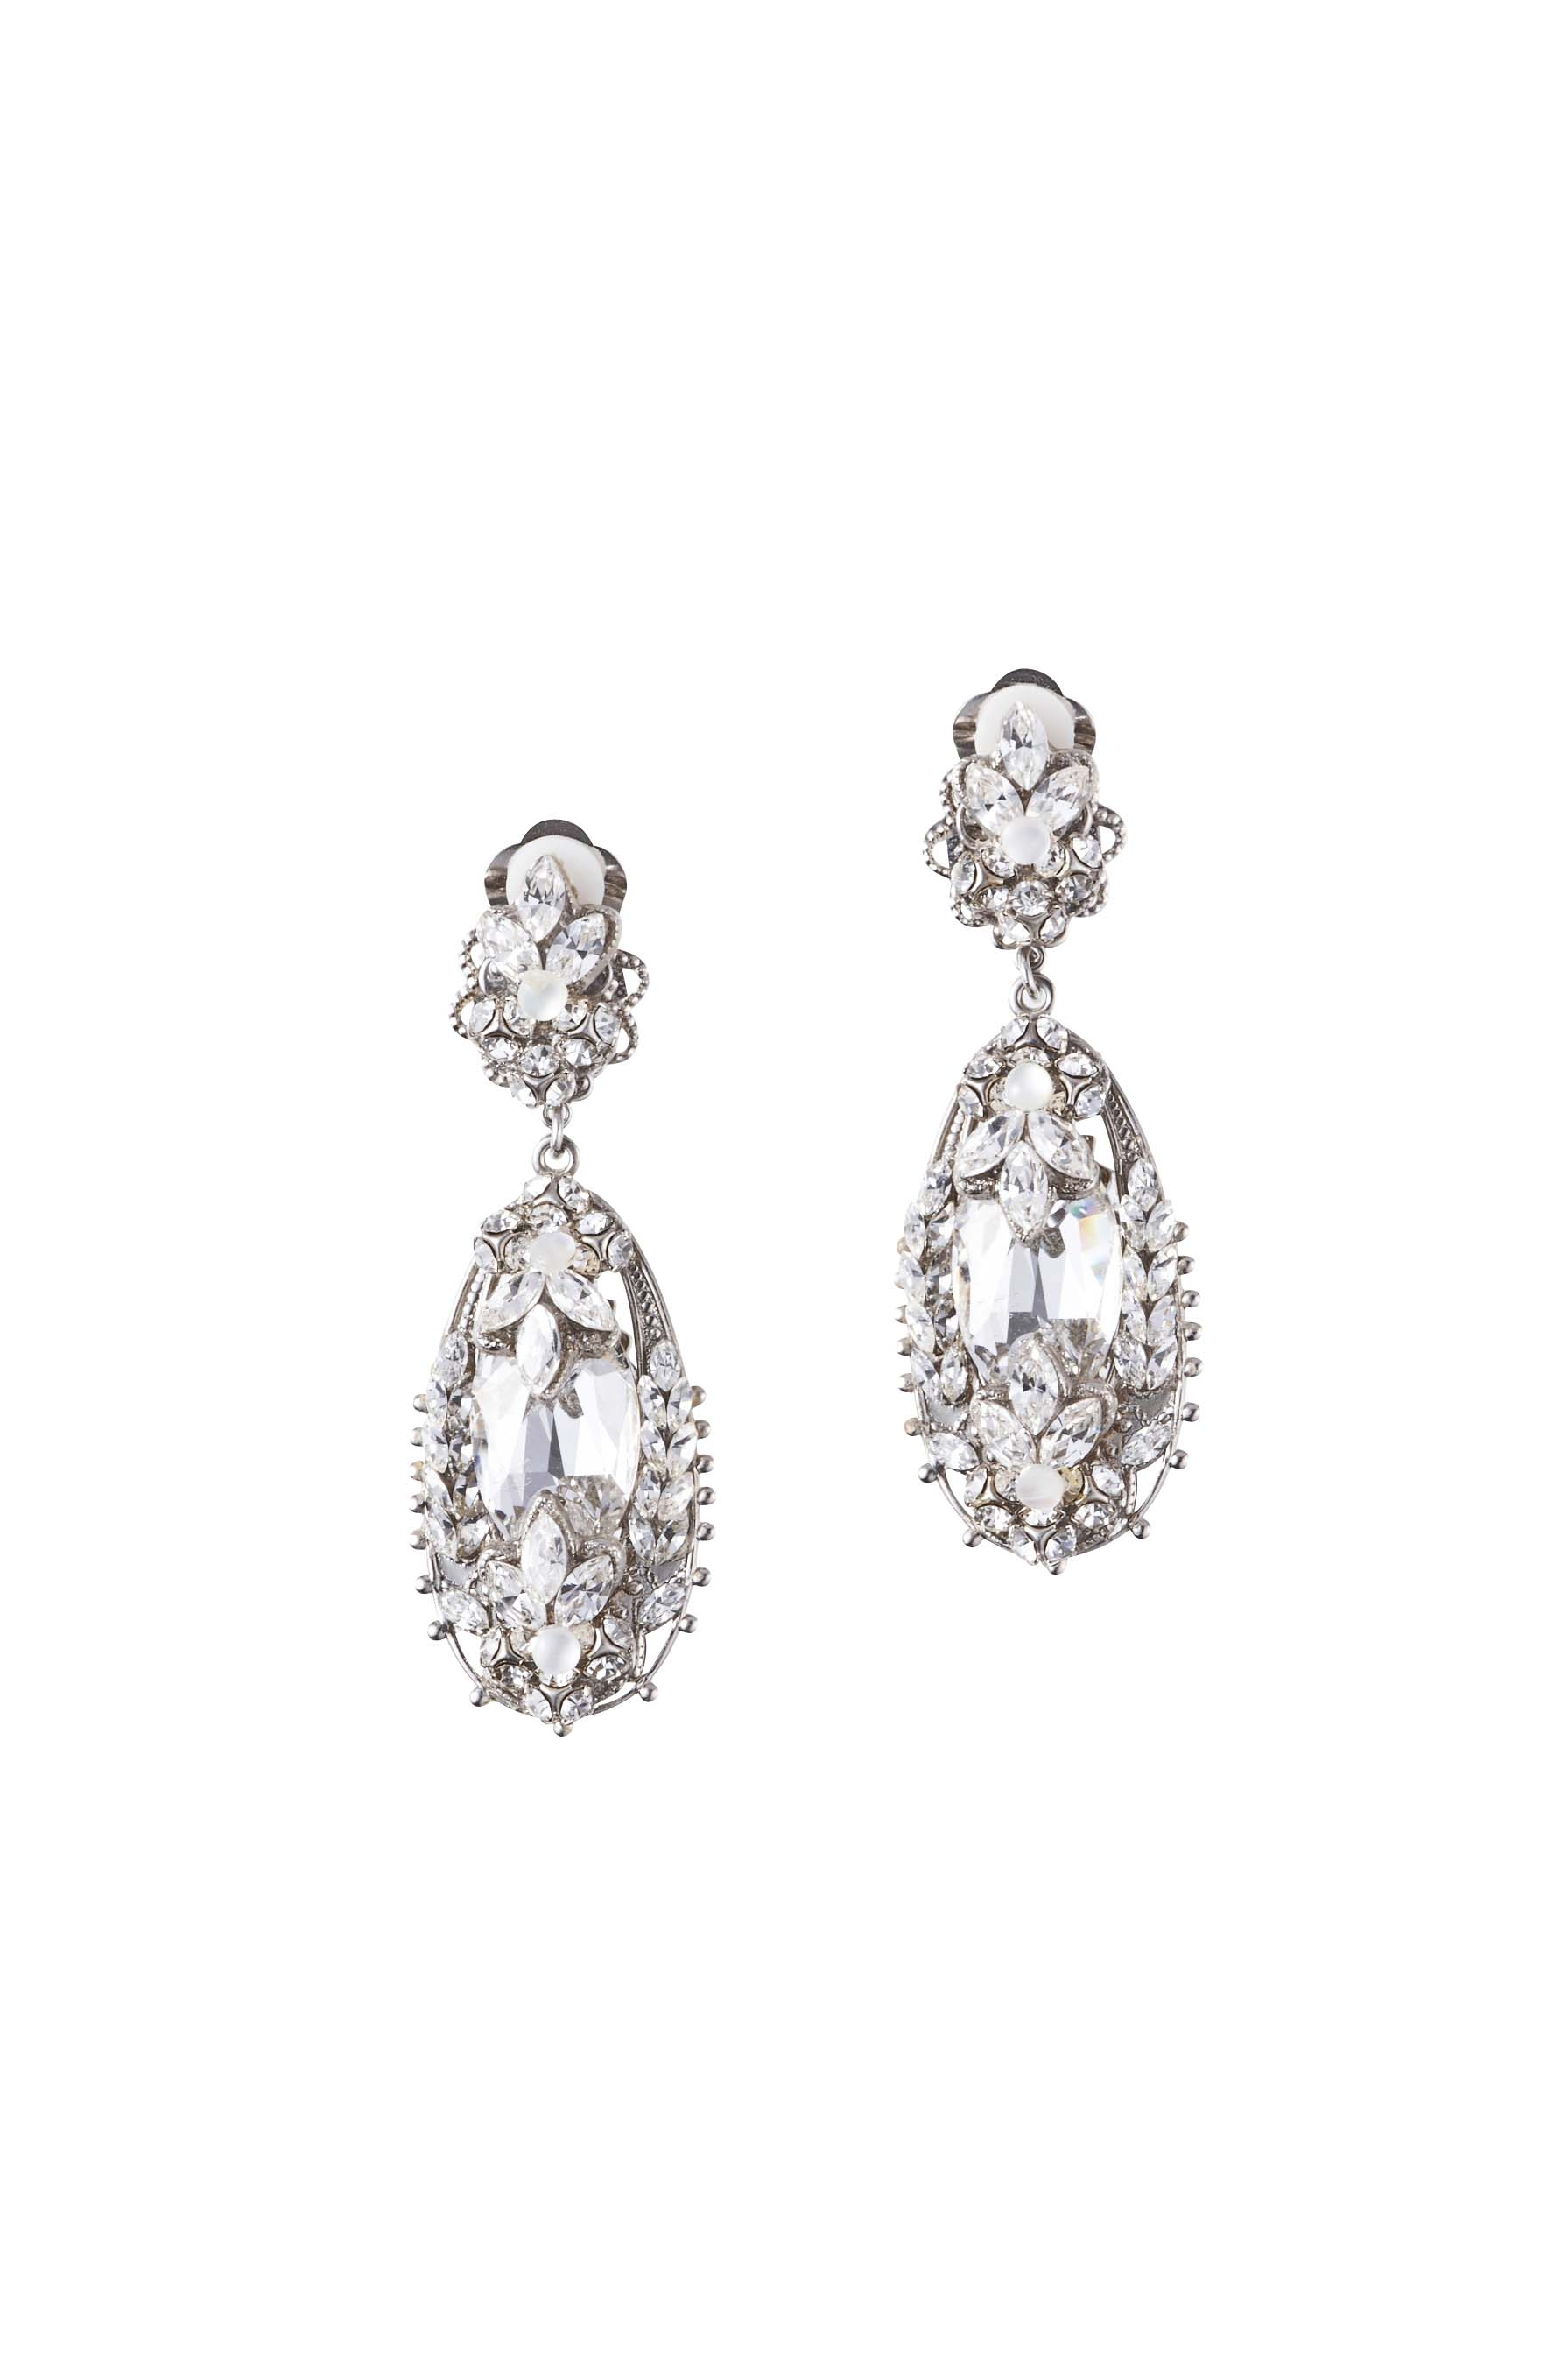 [RENTAL][Sarah Earrings]]by MariaElena(参考価格¥48,600)